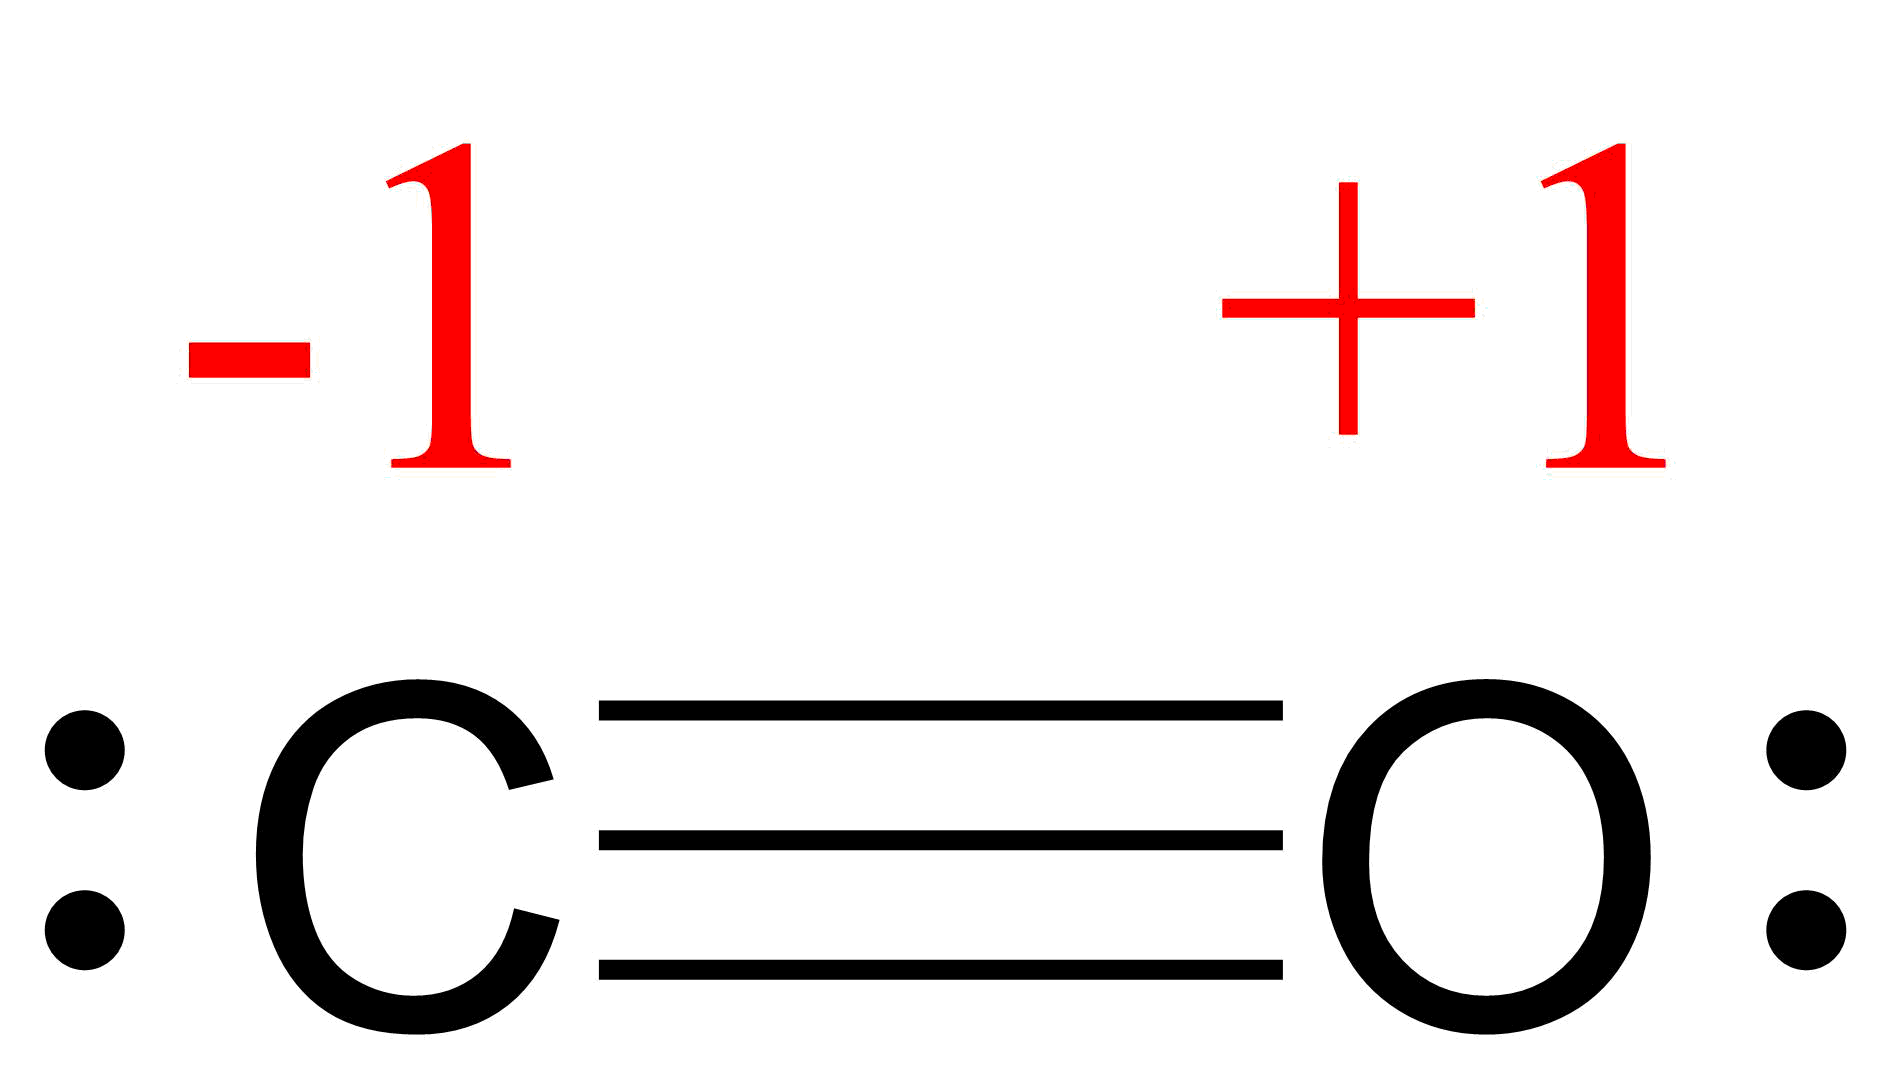 Lewis structure for CO. Carbon is triple bonded to the oxygen atom. Each atom has a lone pair. This gives the carbon atom a formal charge of minus 1, and the oxygen a formal charge of plus 1.